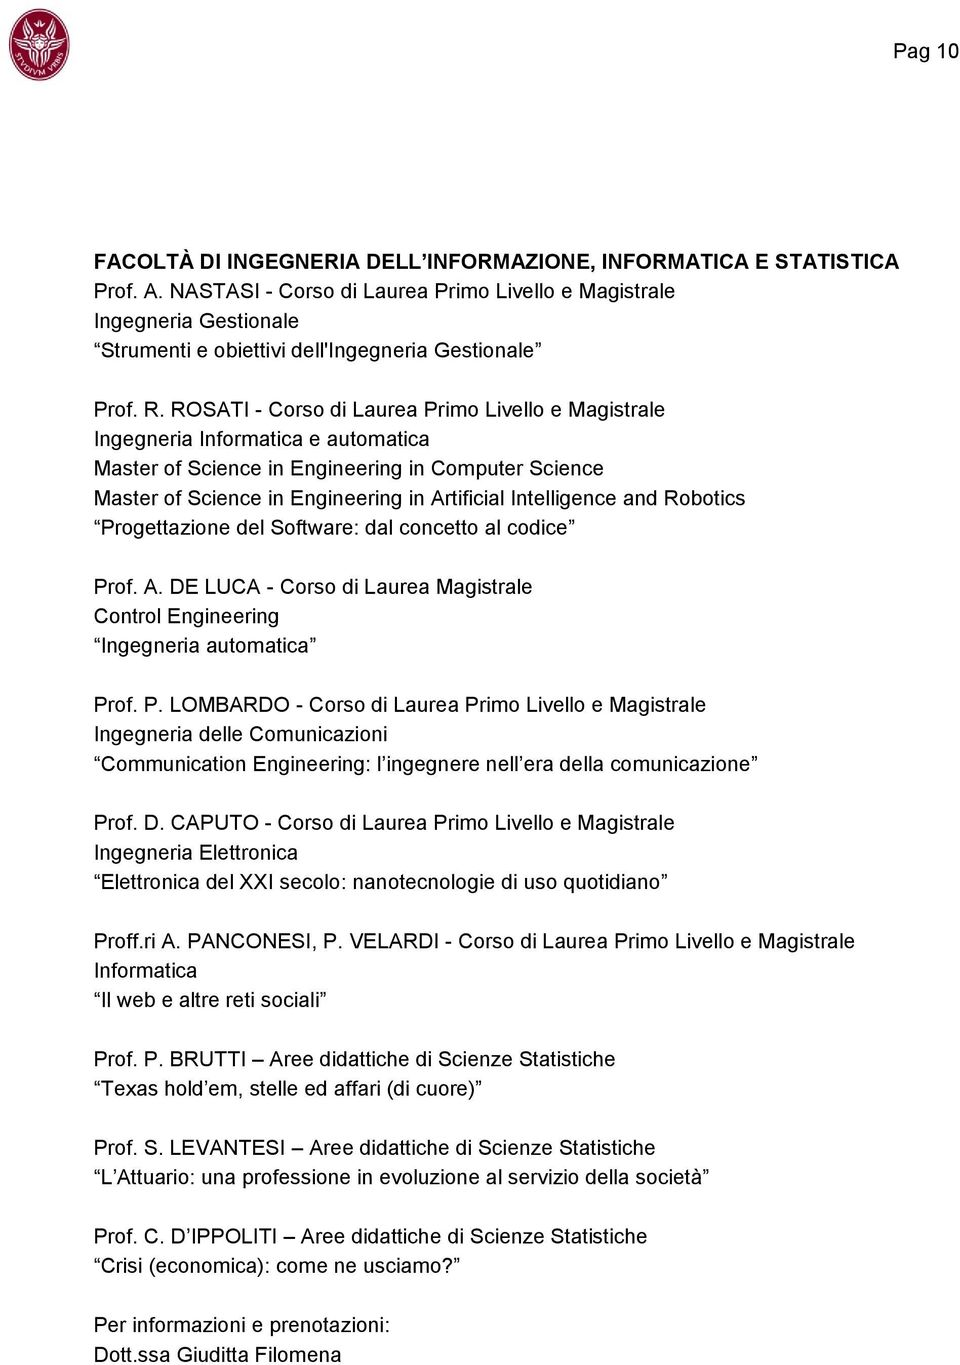 ROSATI - Corso di Laurea Primo Livello e Magistrale Ingegneria Informatica e automatica Master of Science in Engineering in Computer Science Master of Science in Engineering in Artificial